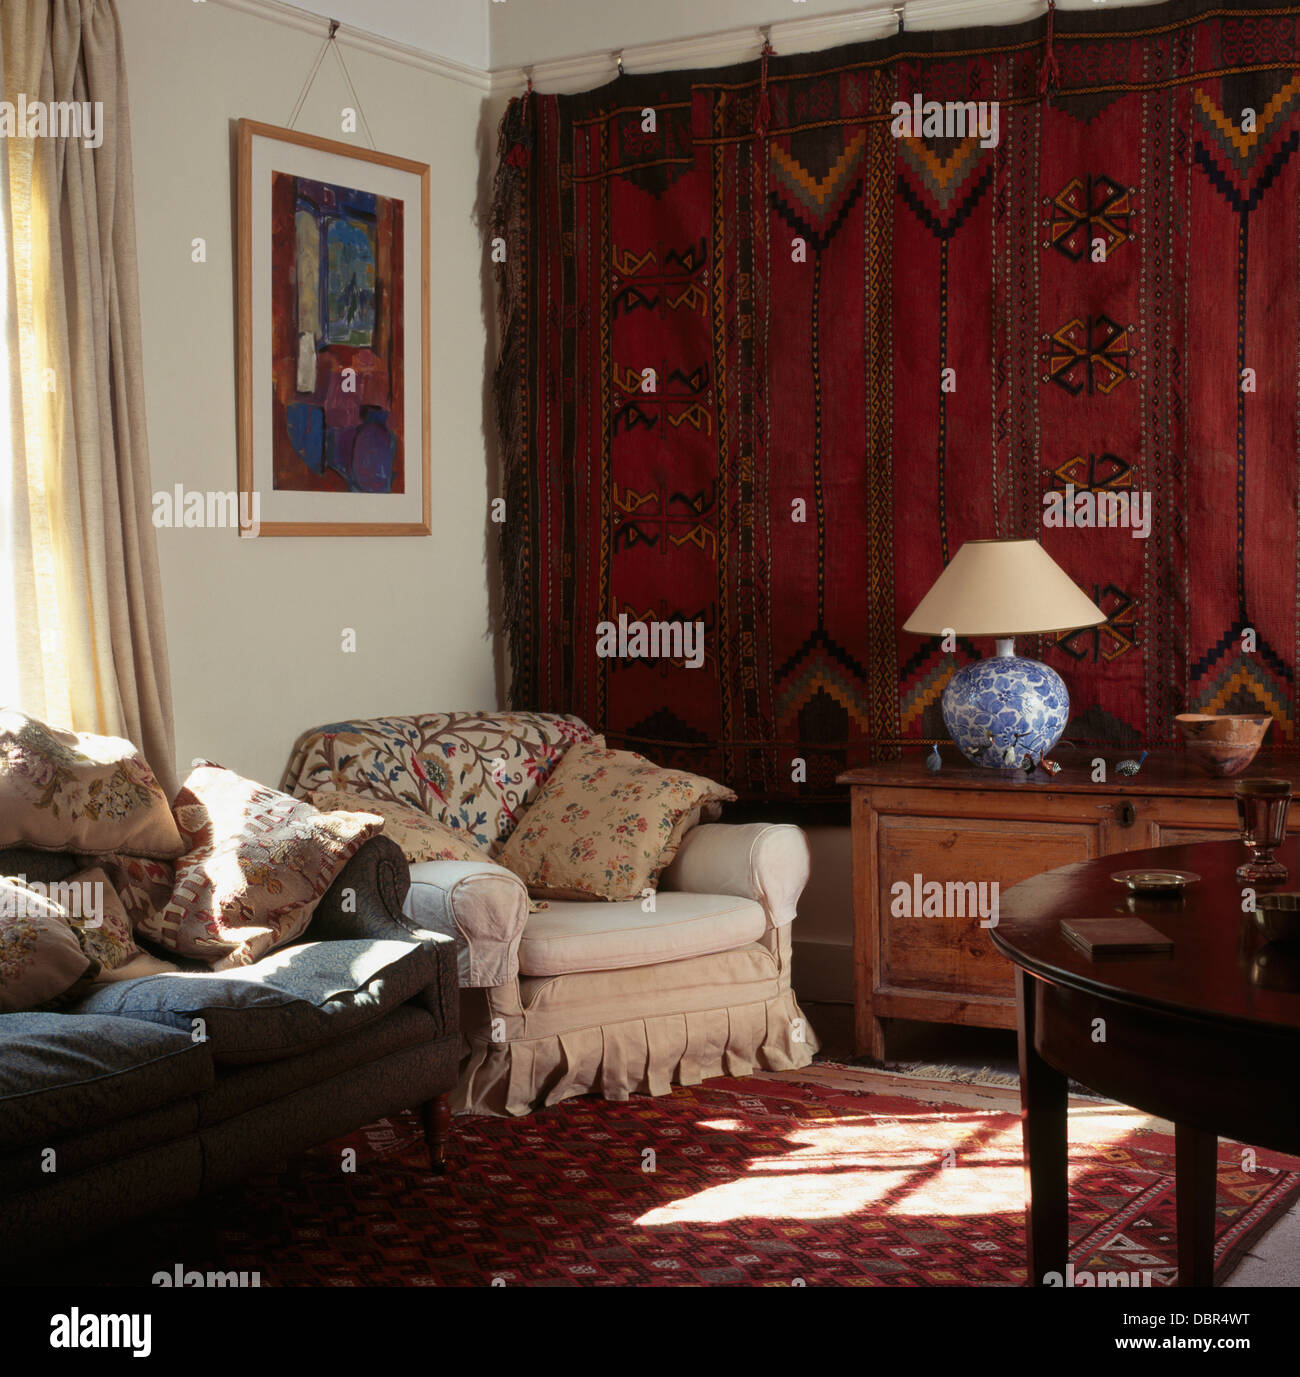 Oriental Rug For Small Room: Old Red Persian Carpet Hanging On Wall In Townhouse Living